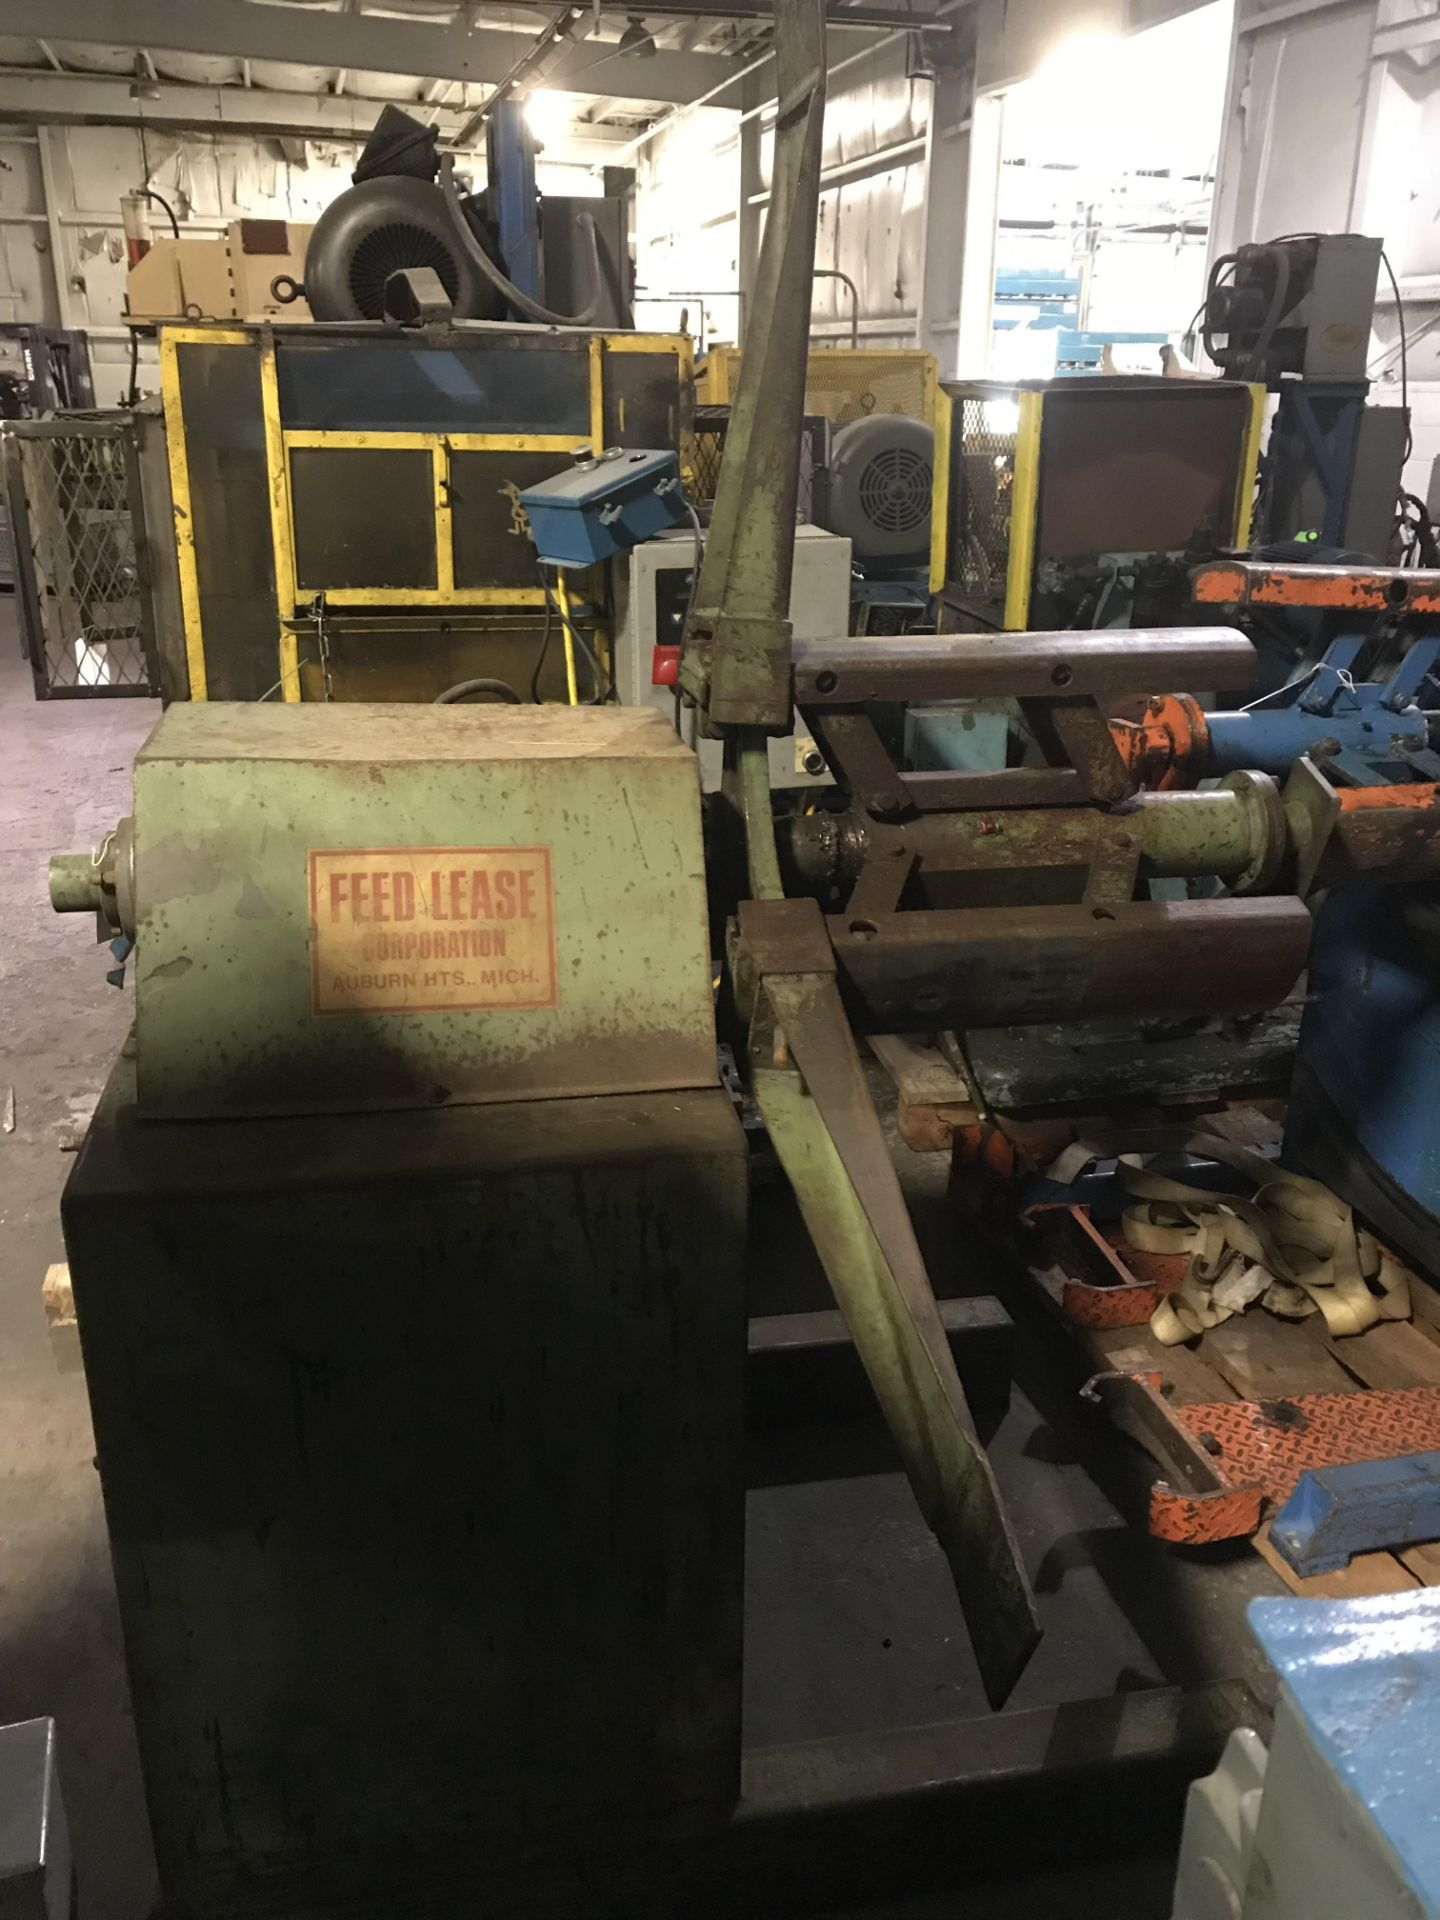 Feed Lease Uncoiler - Image 2 of 2